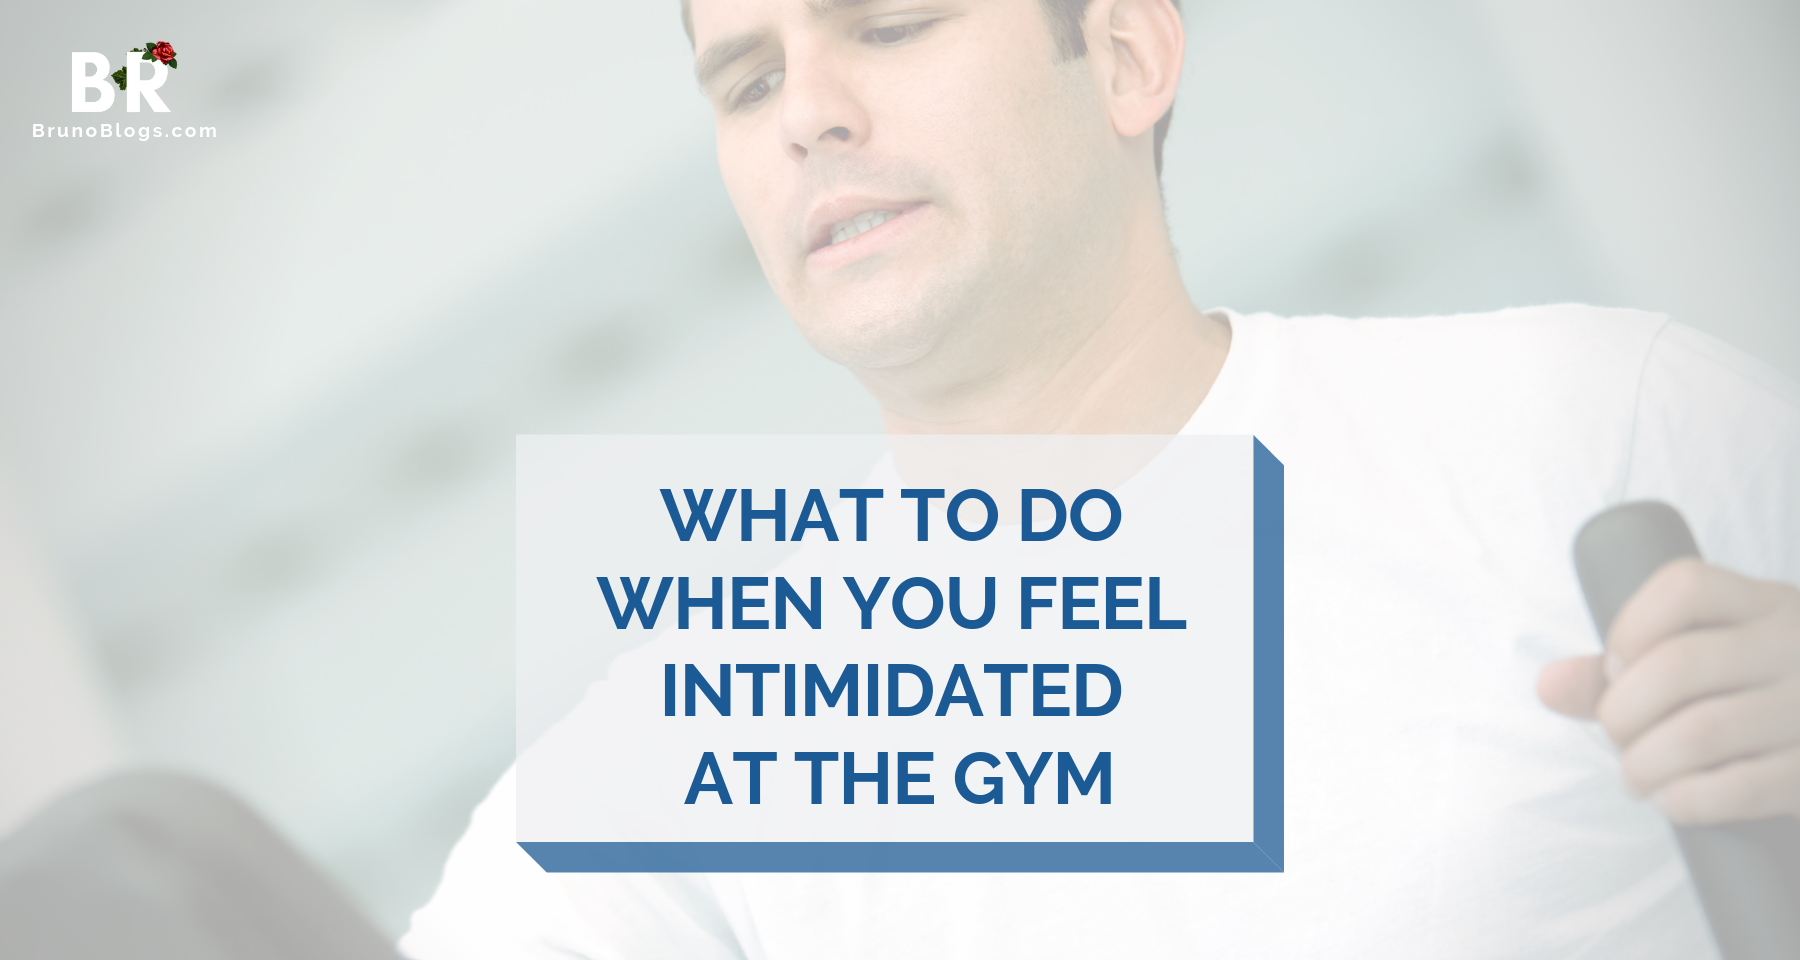 finding-confidence-at-the-gym-bruno-blogs-fitness-advice